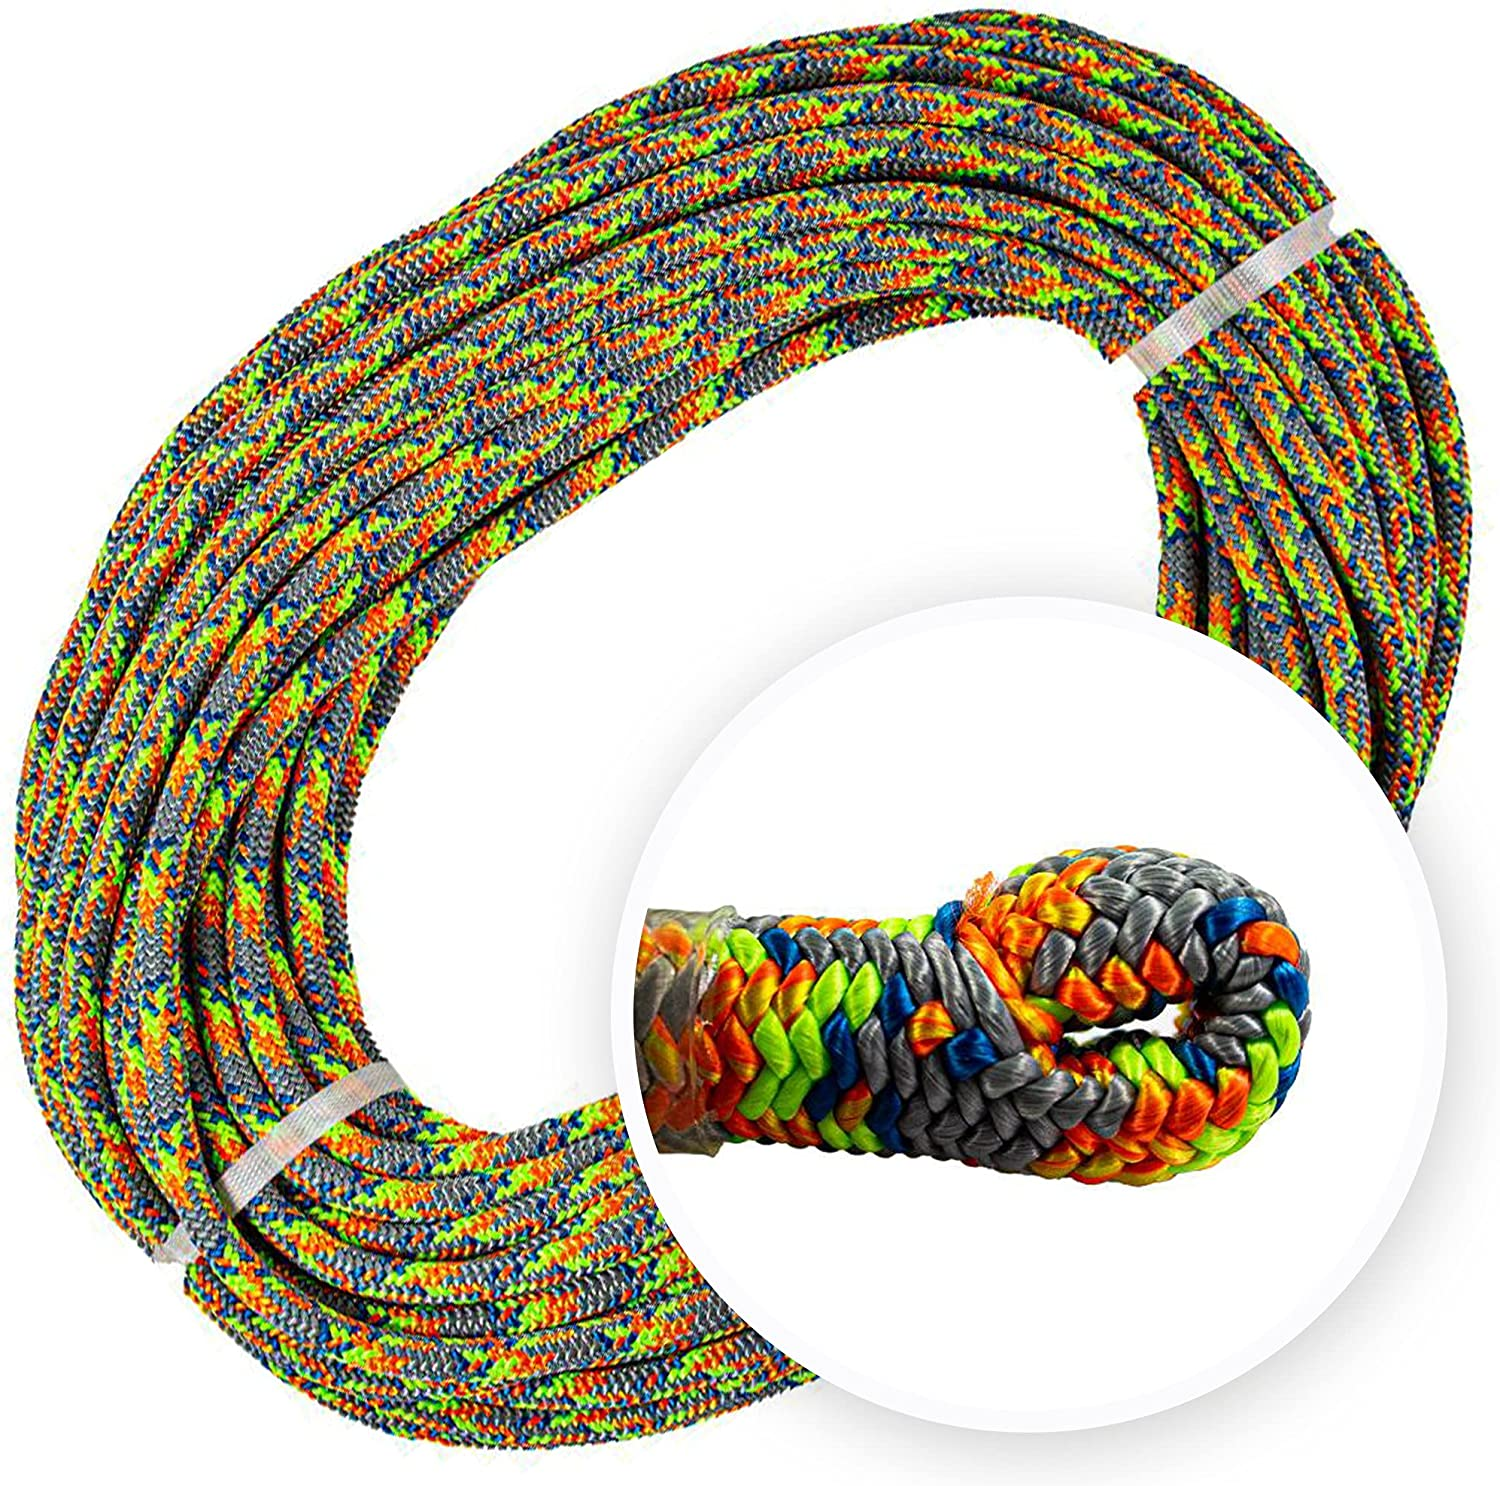 Teufelberger Industry No. 1 Tachyon Climbing Rope - fo 24-Strand Polyester A surprise price is realized